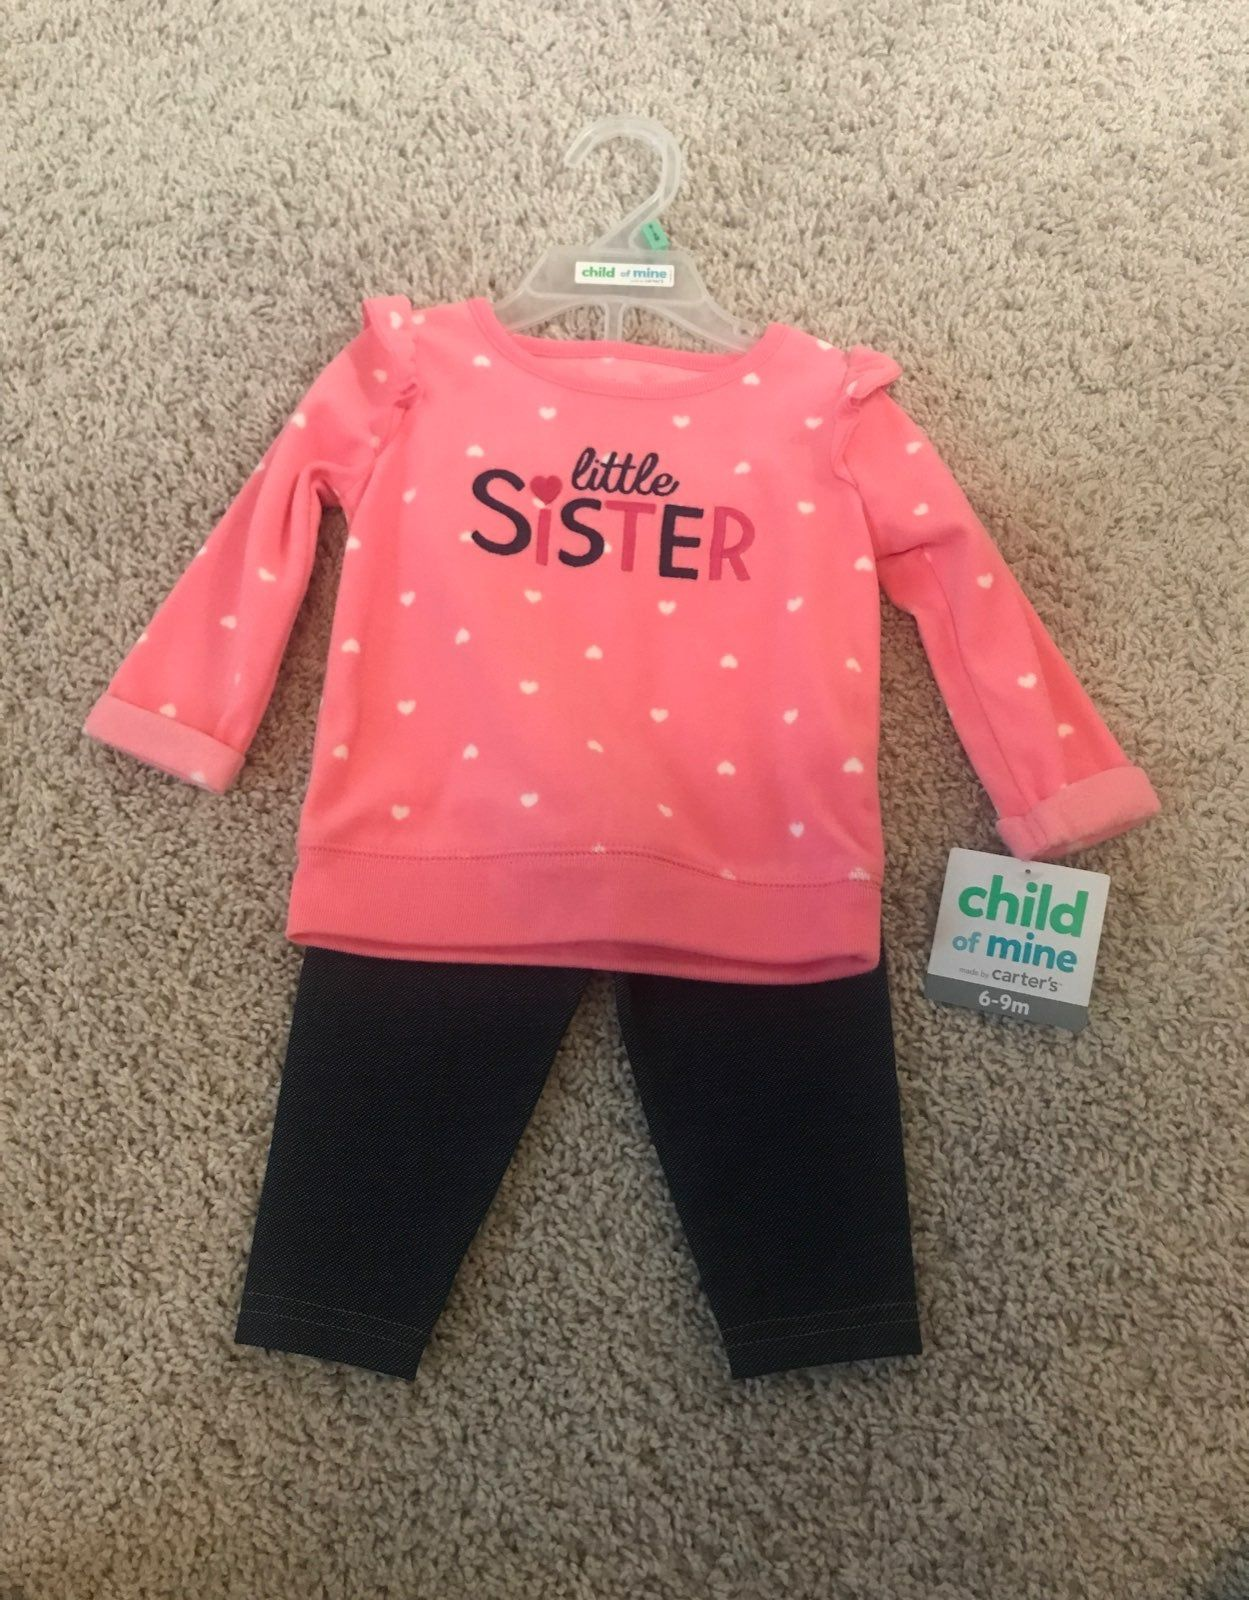 Brand new with tag baby girl outfit, fleece top and pant. Little